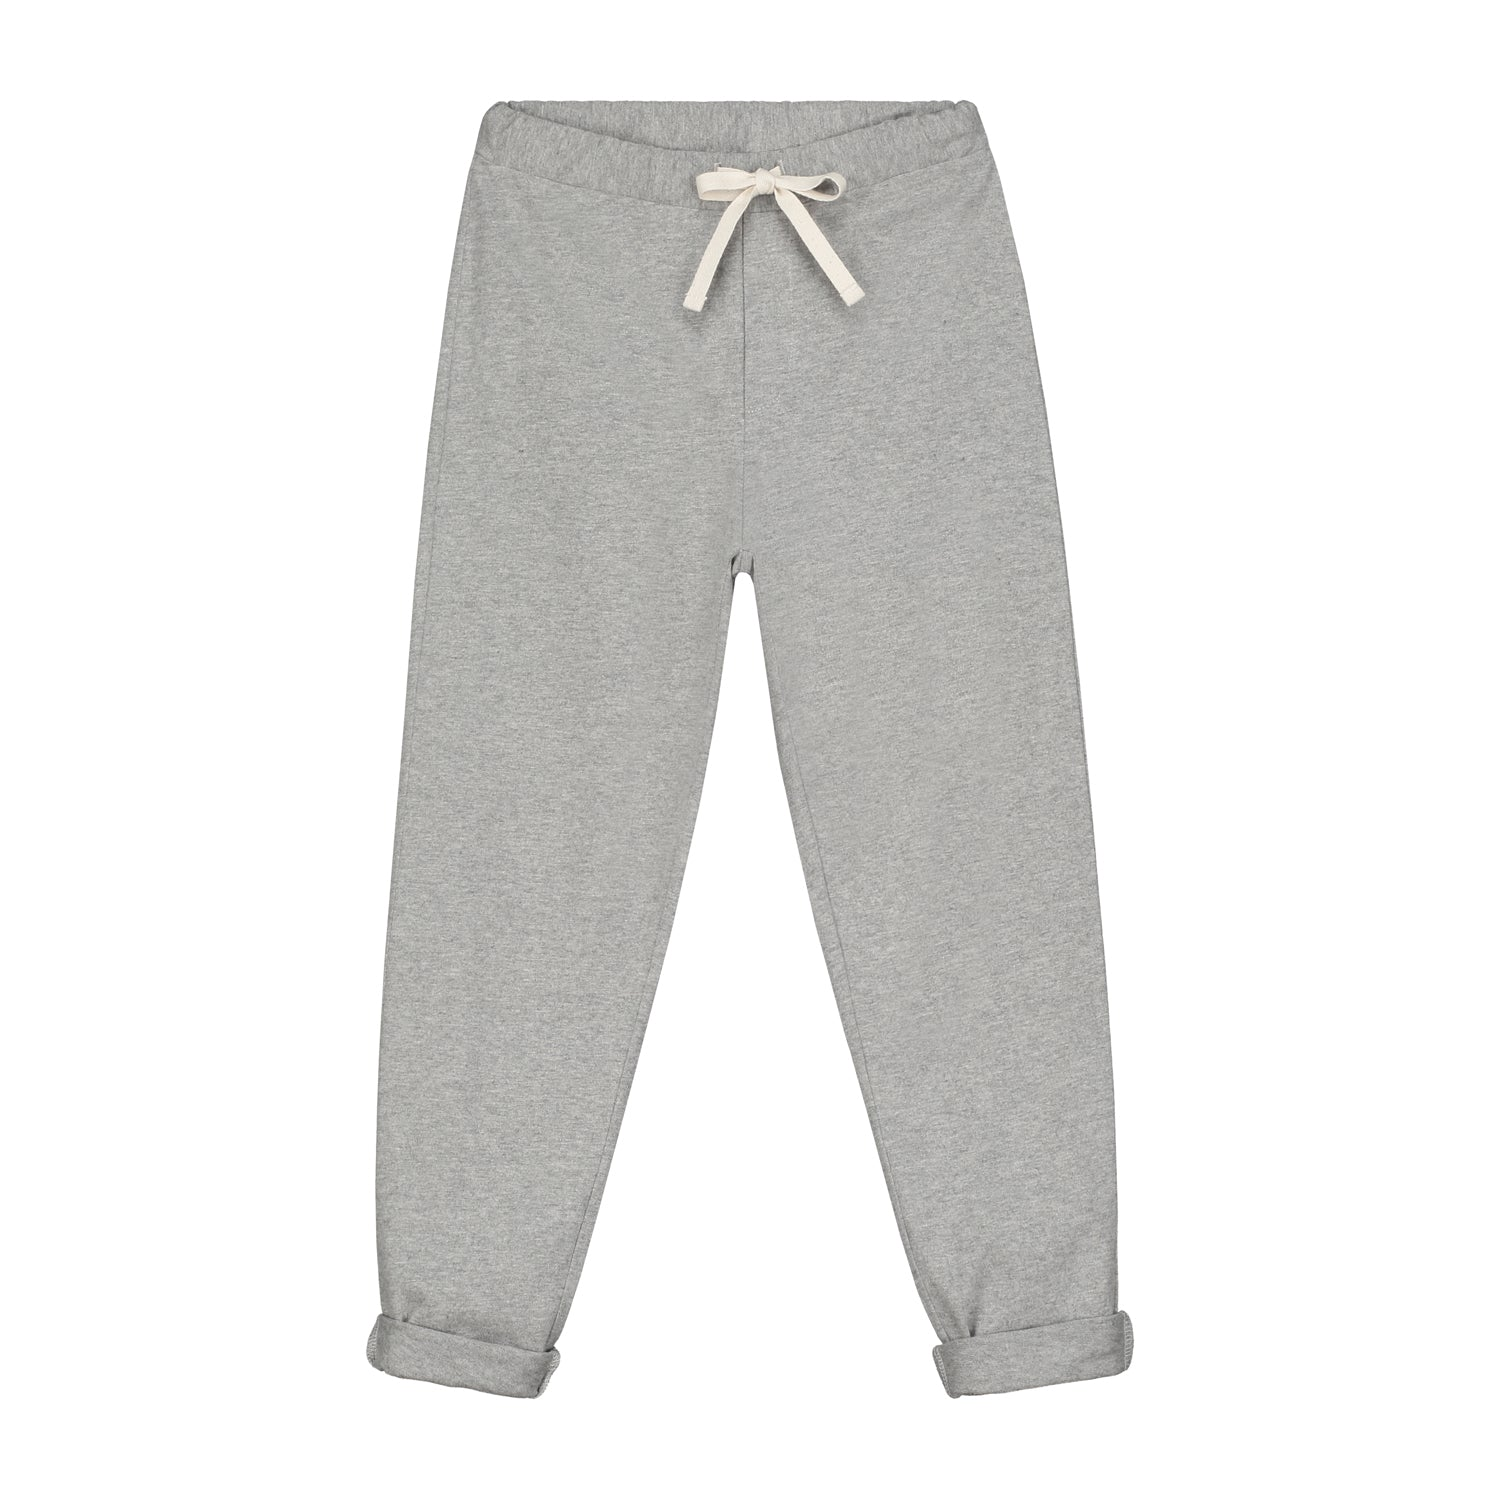 Pants Relaxed Grey Melange